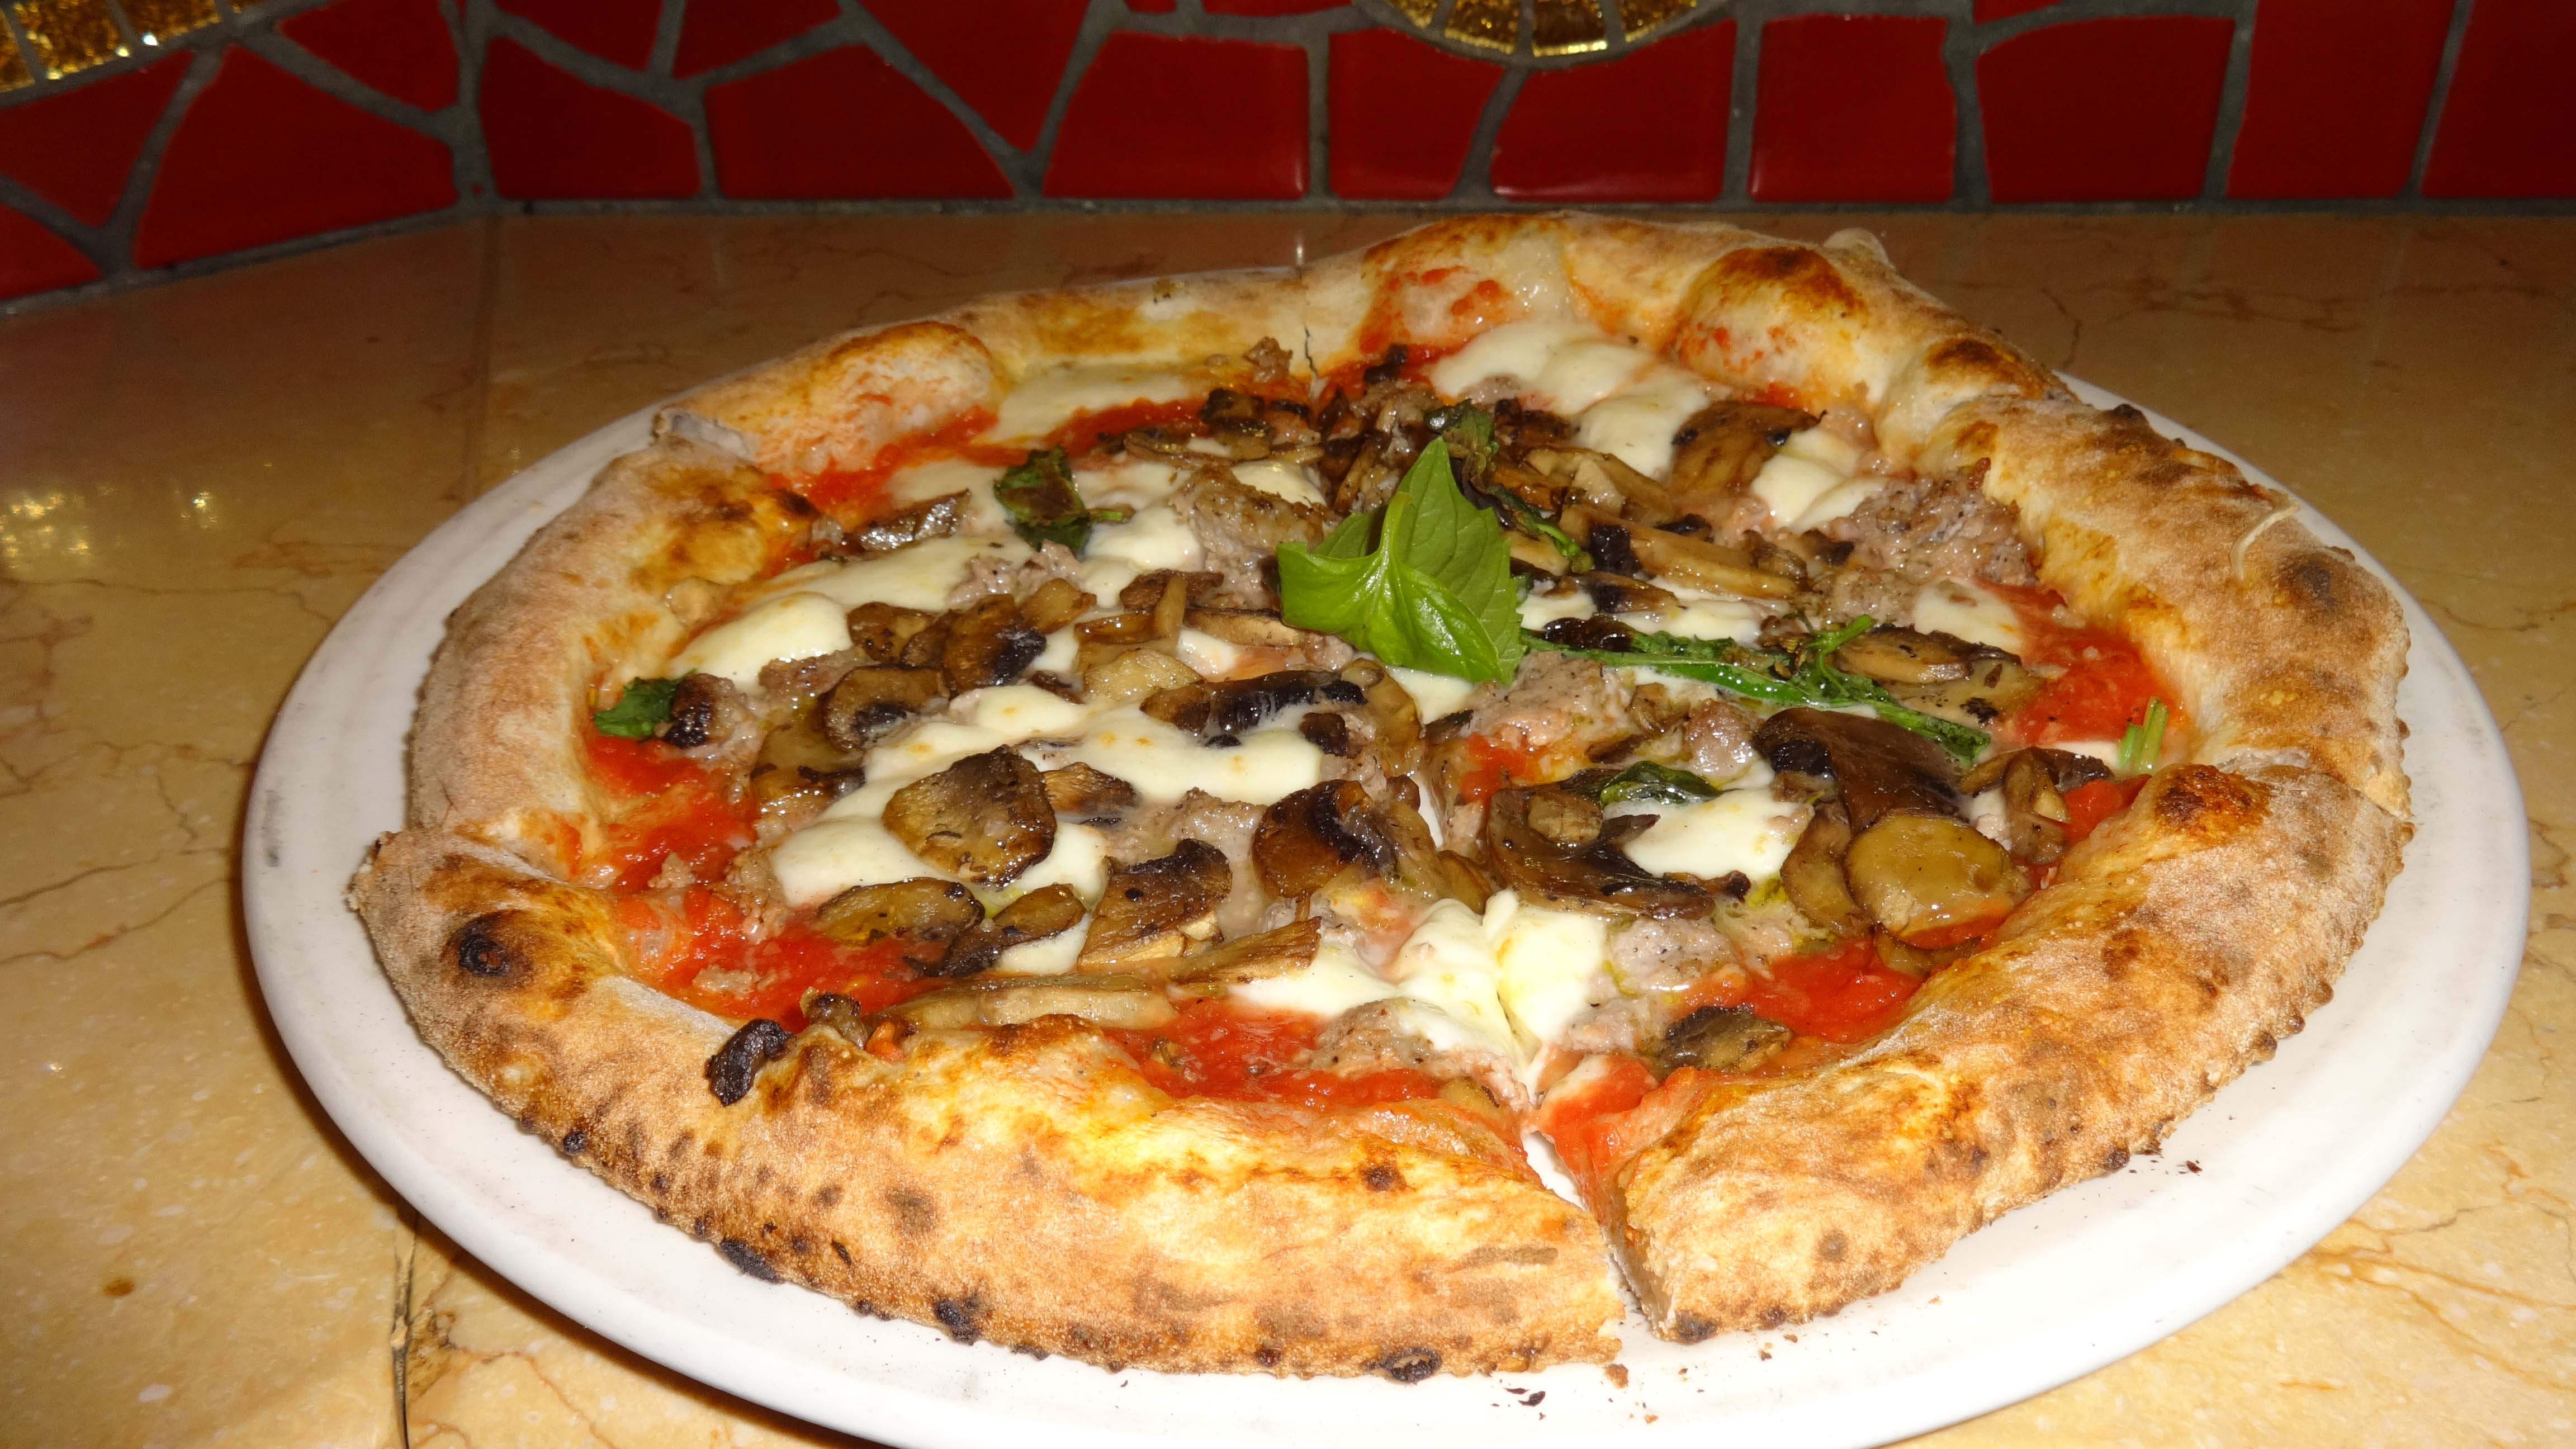 Review: The pizza at Eataly | BatteryPark.TV We Inform